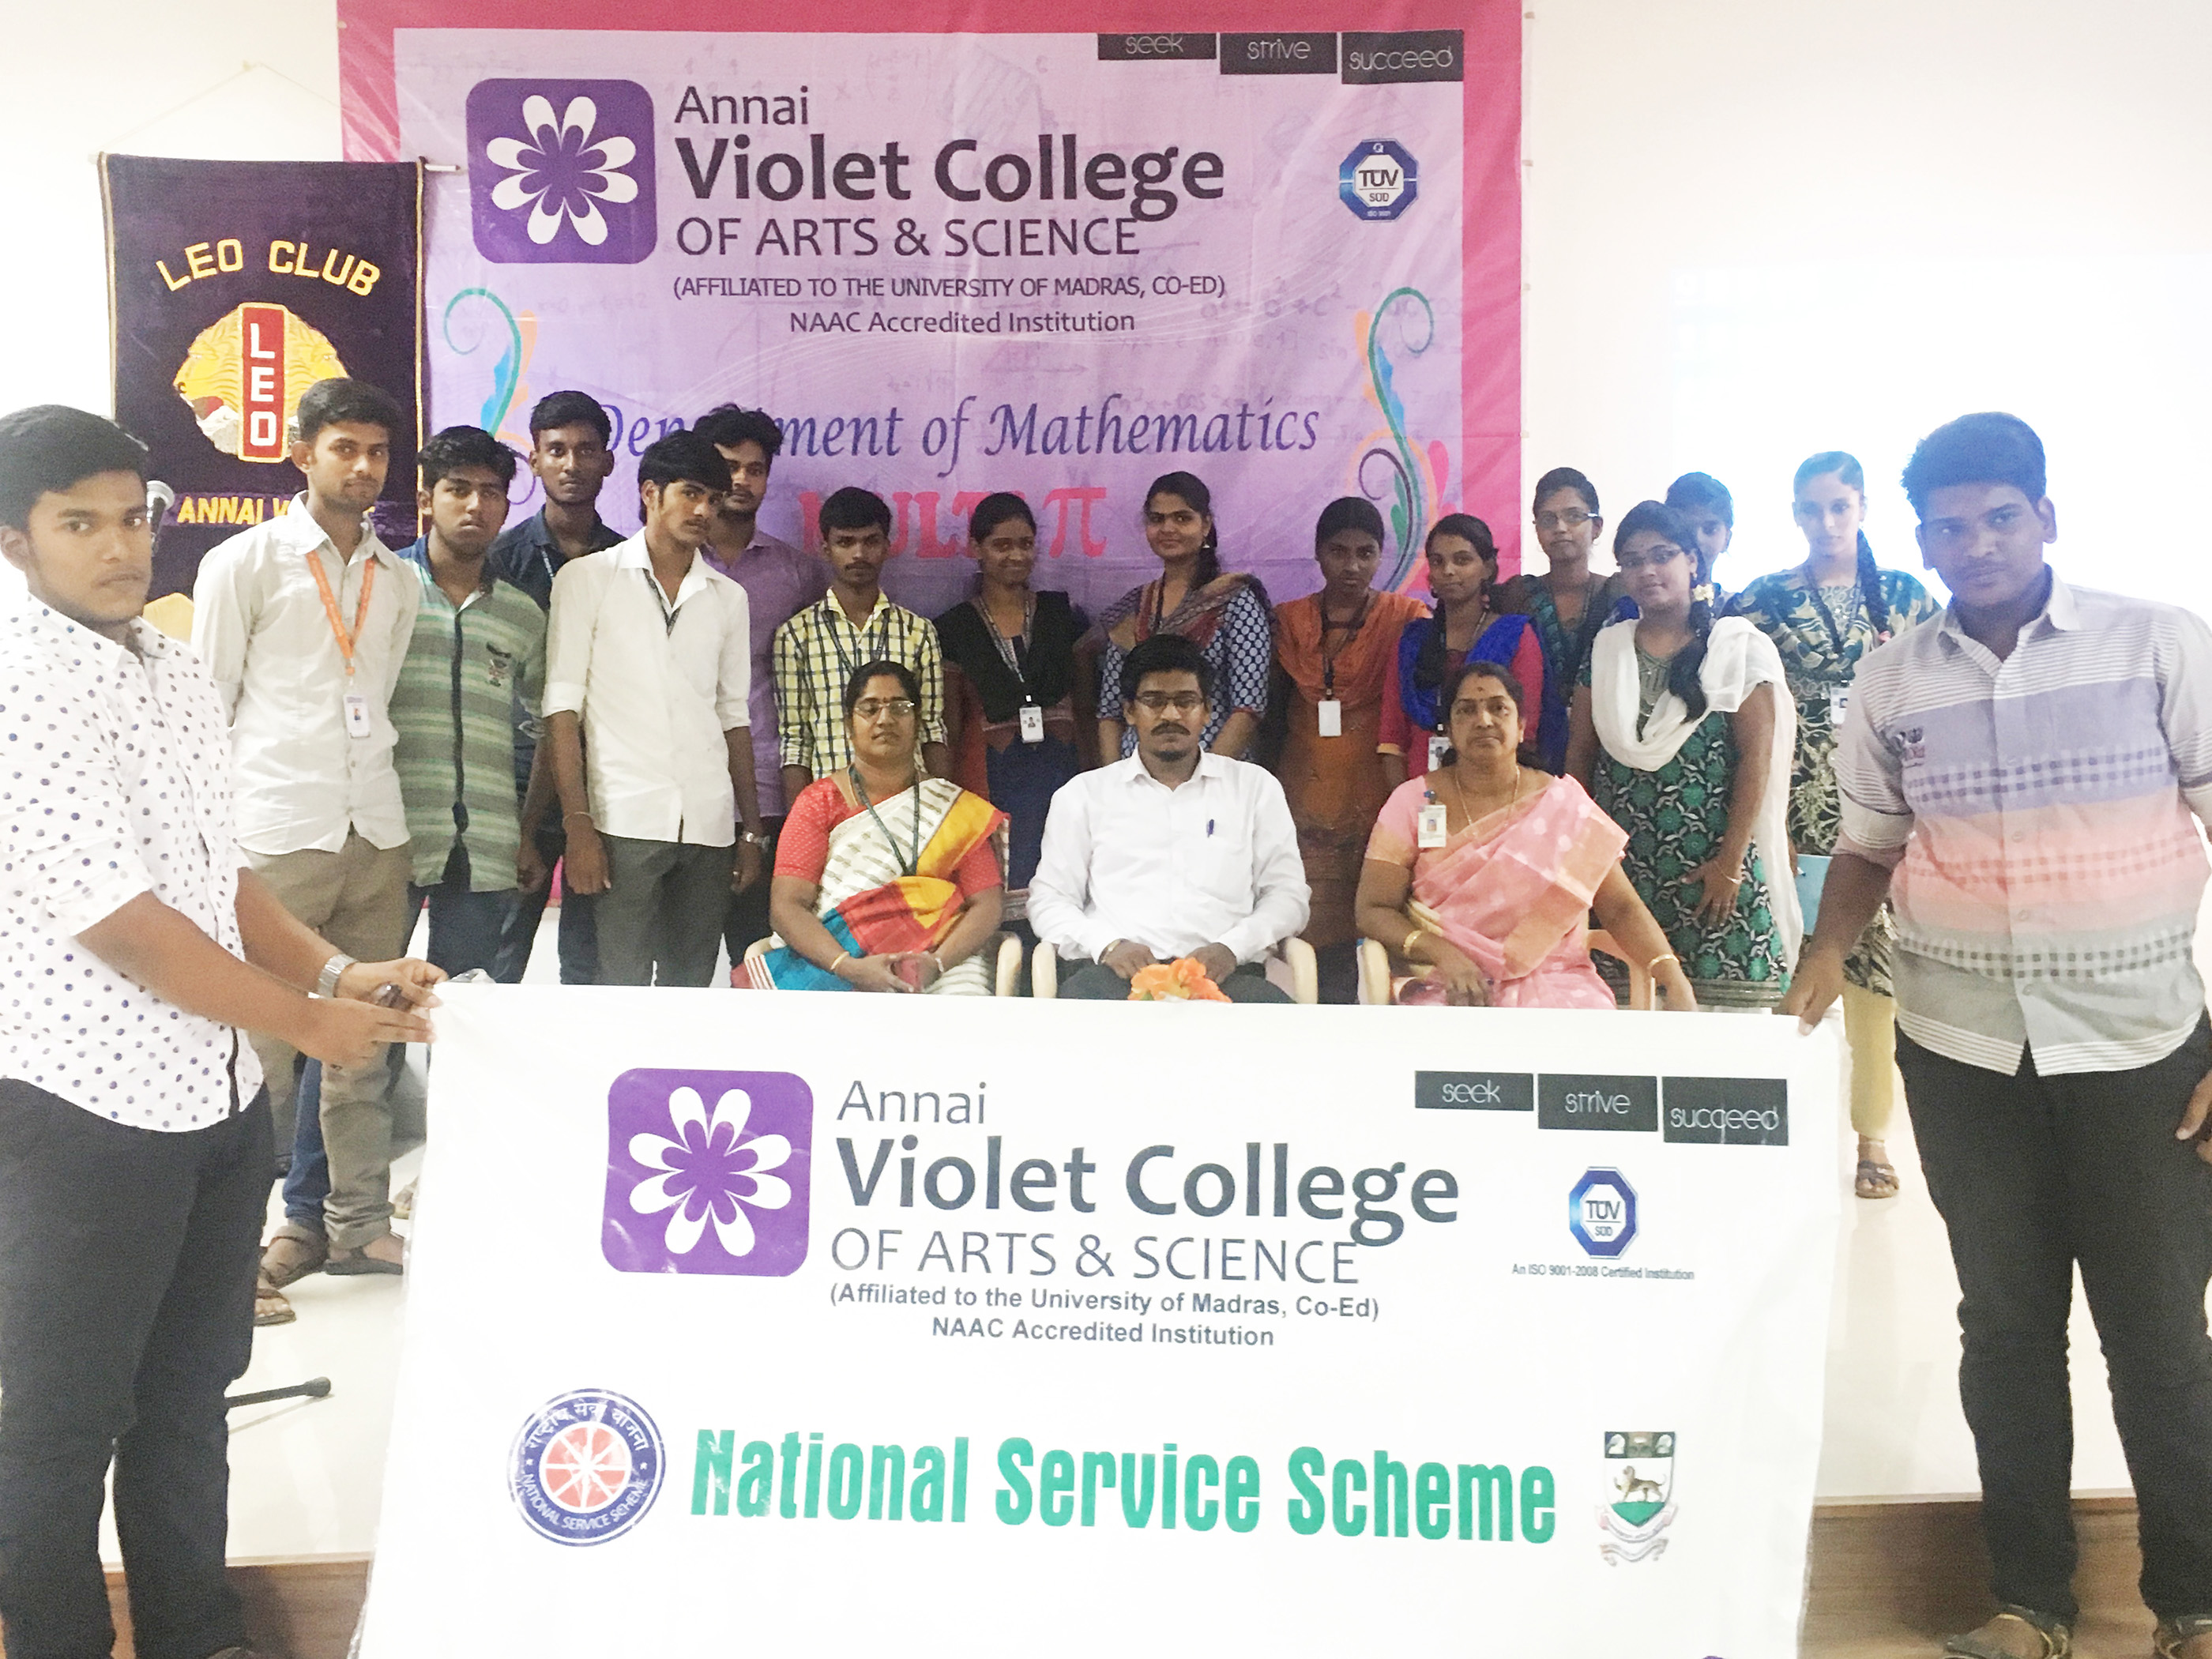 Annai violet college (Free Camp)